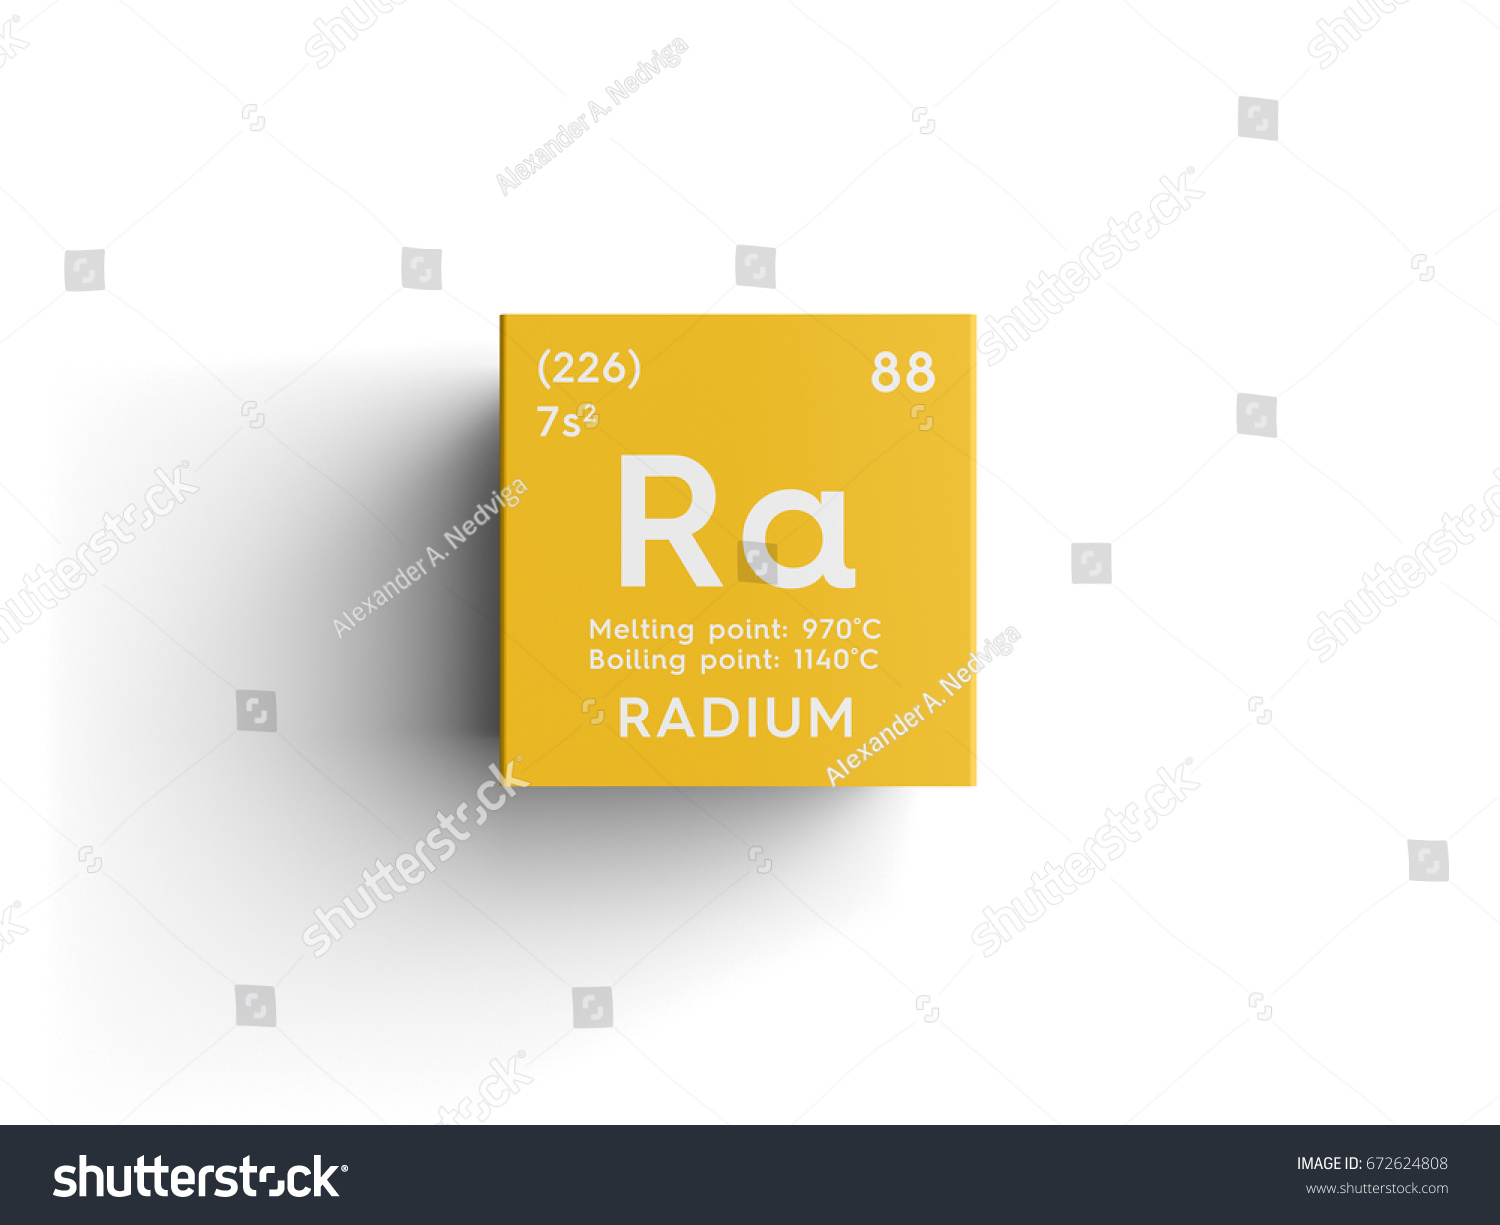 Radium alkaline earth metals chemical element stock illustration radium alkaline earth metals chemical element of mendeleevs periodic table radium in square gamestrikefo Images